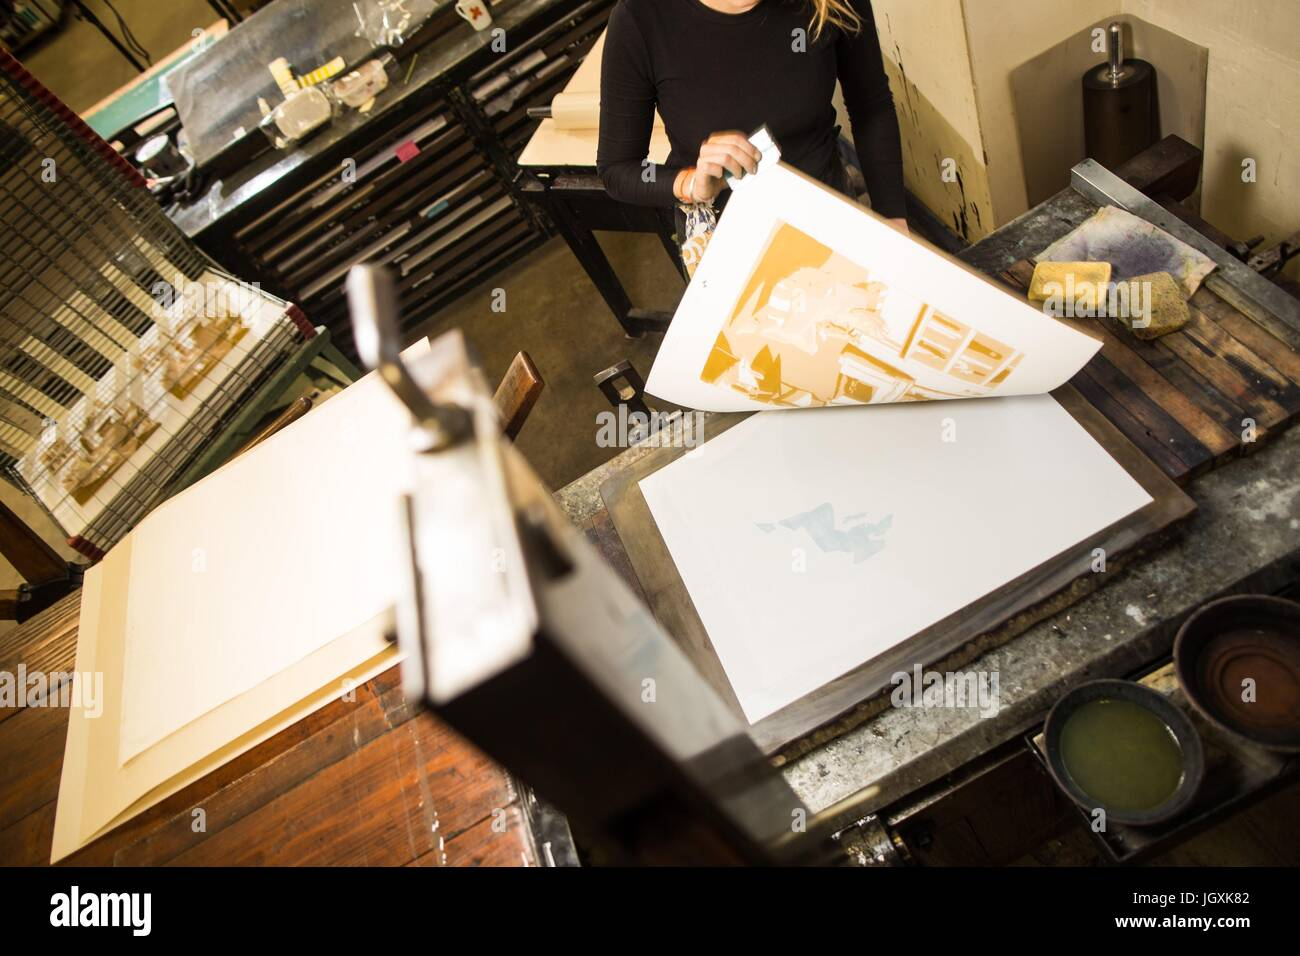 IMAGERIE D'EPINAL PRINTING HOUSE,(88) VOSGES,EASTERN FRANCE - Stock Image